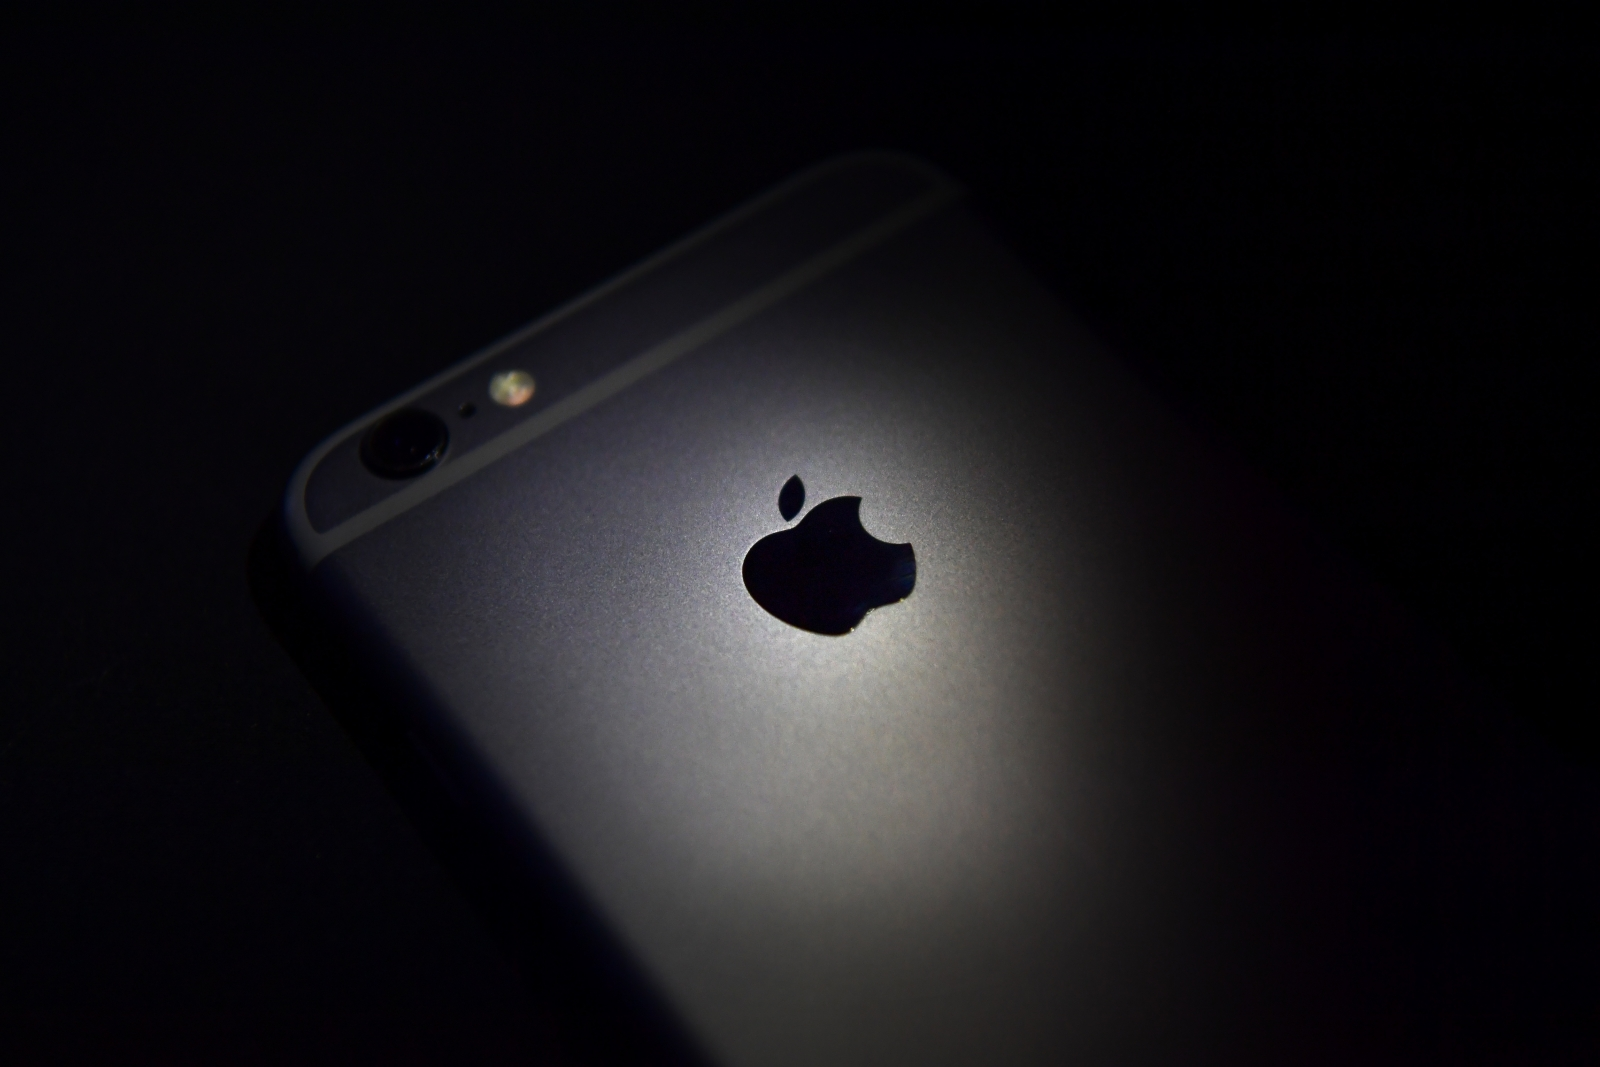 Apple faces €13bn tax penalty for receiving 'illegal state aid' in Ireland